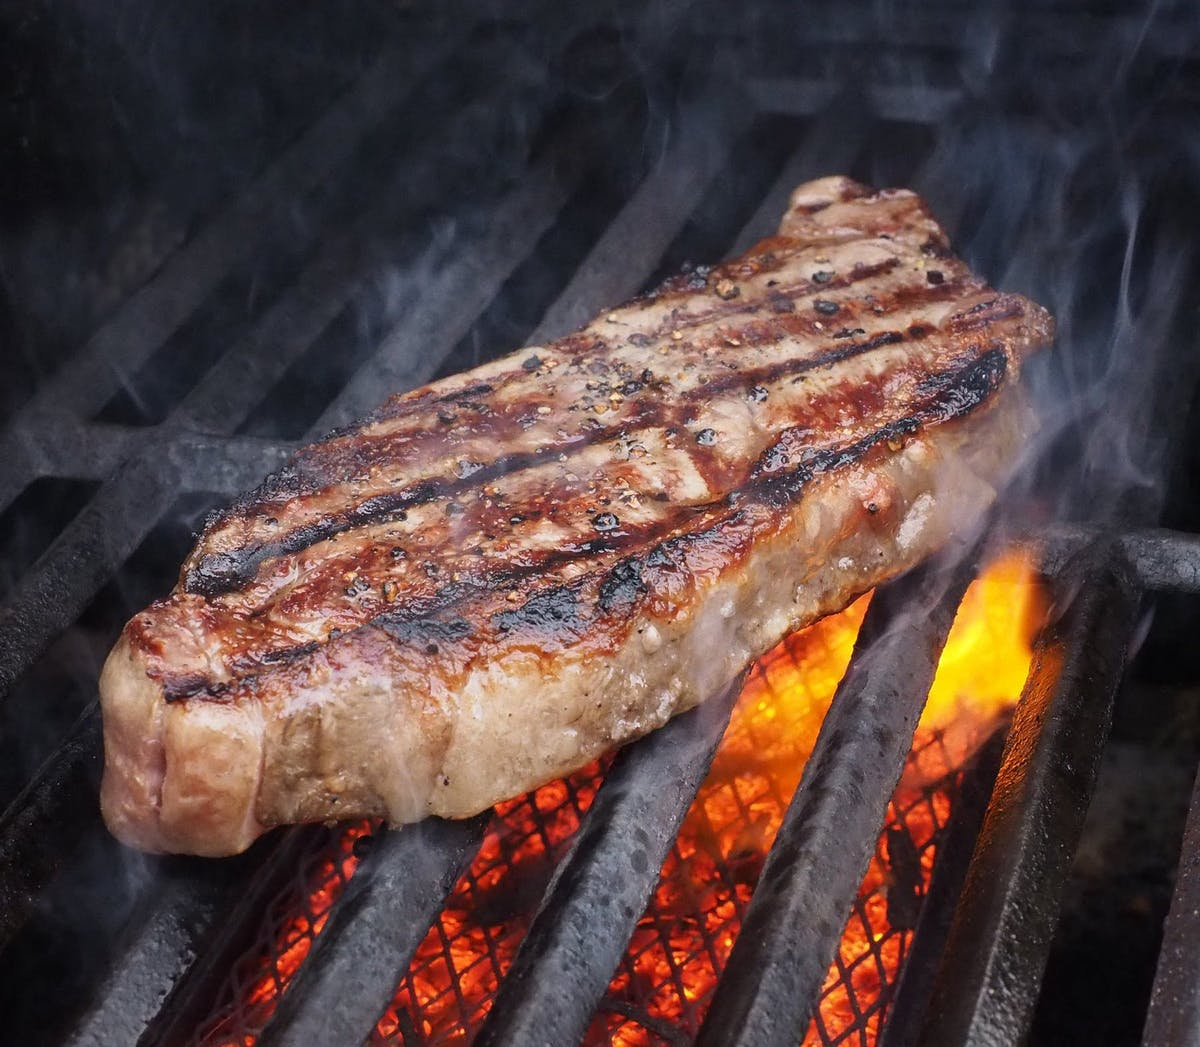 a piece of meat being cooked on a grill